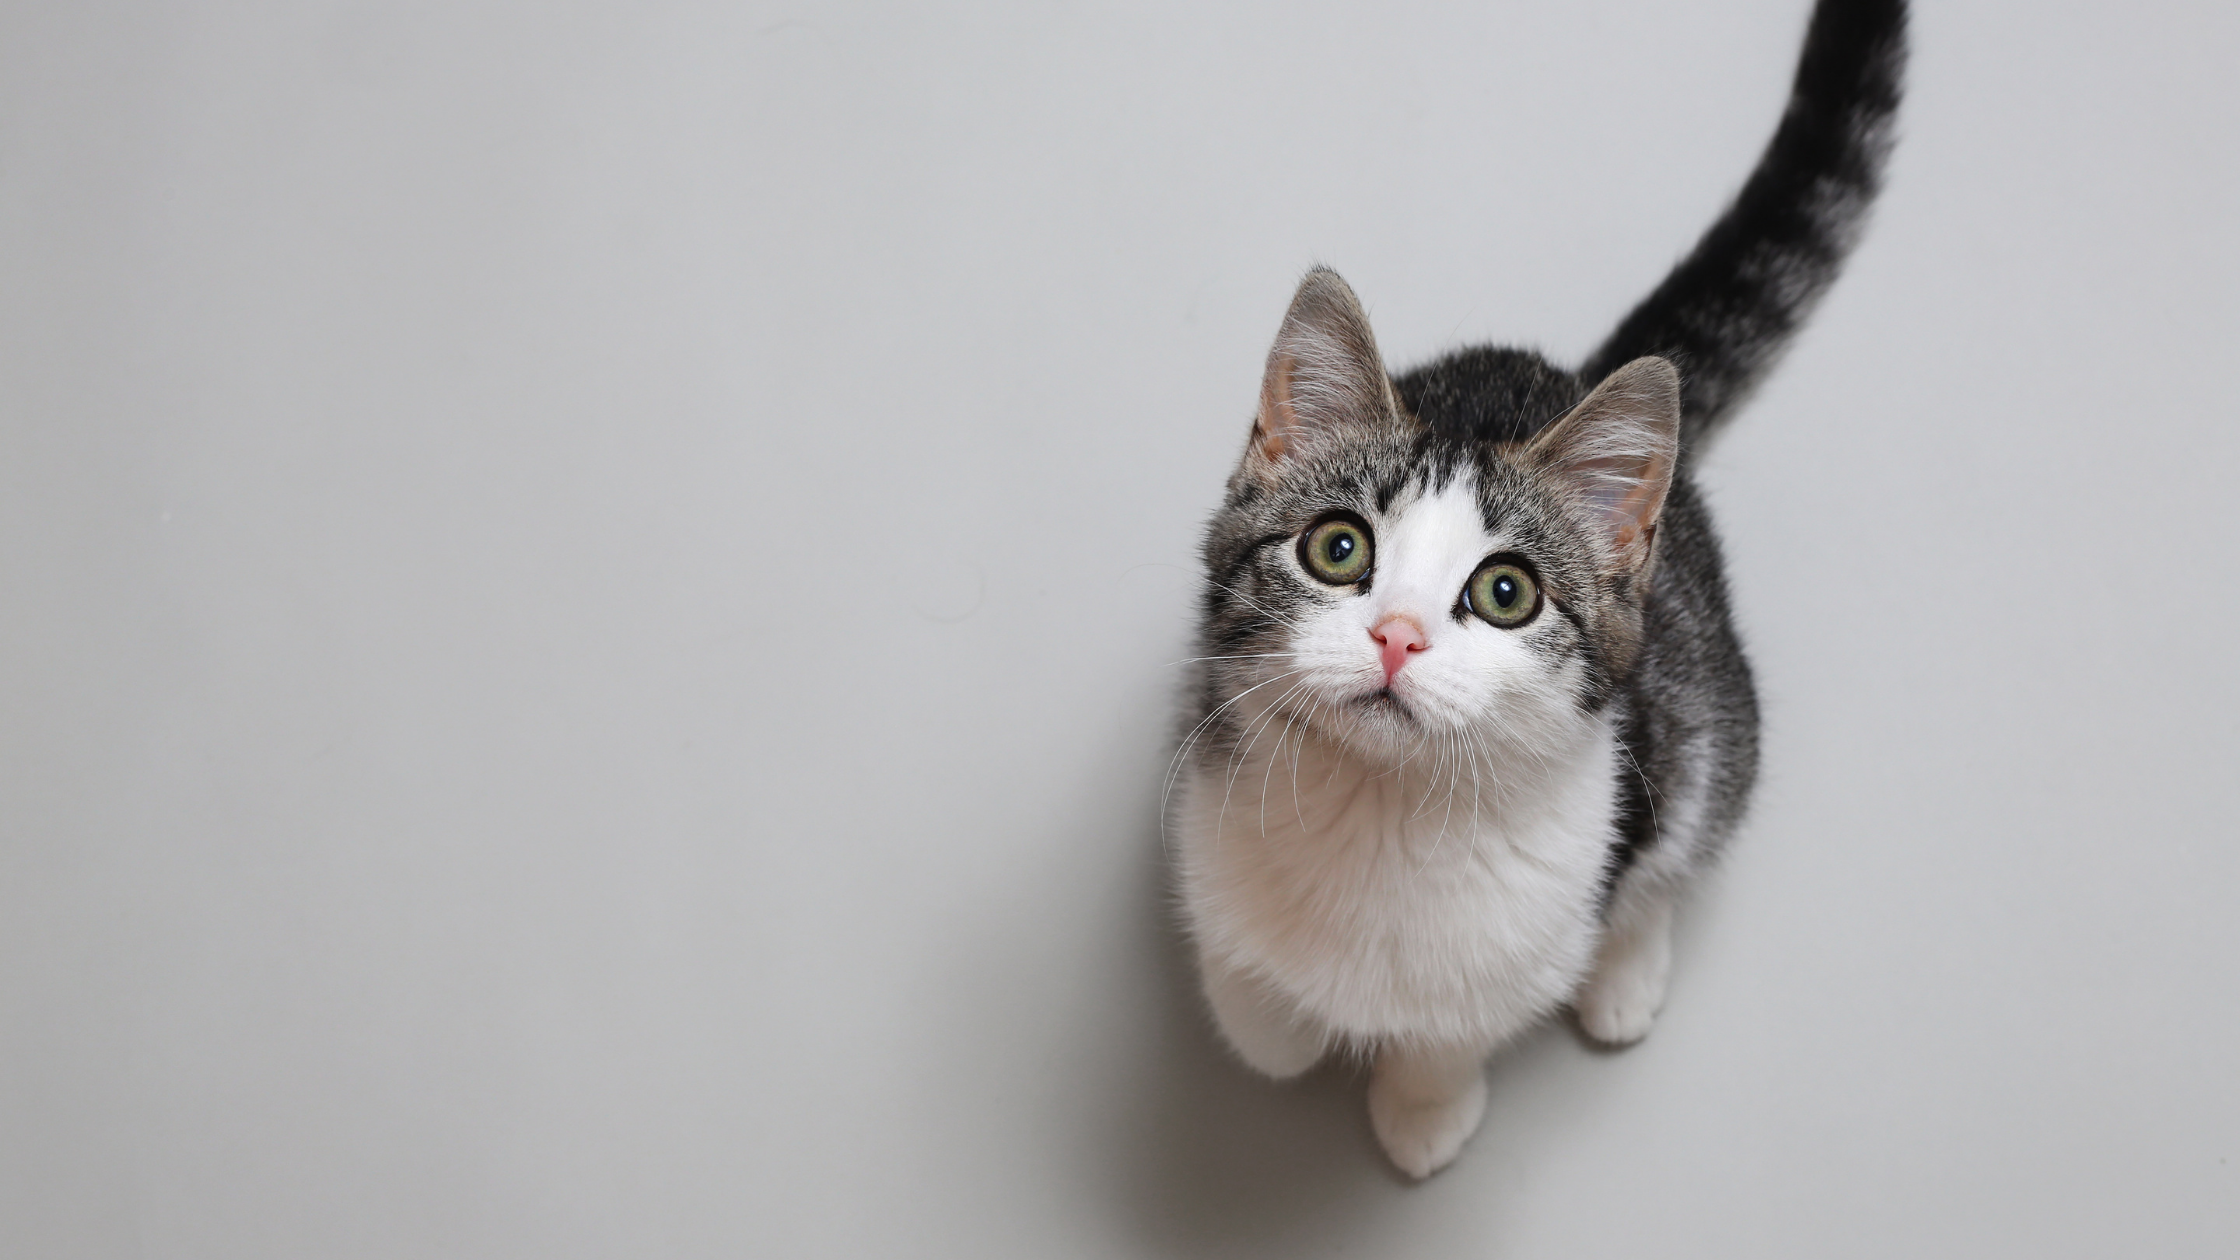 Cat Nutrition: How Many Calories Does A Cat Need?